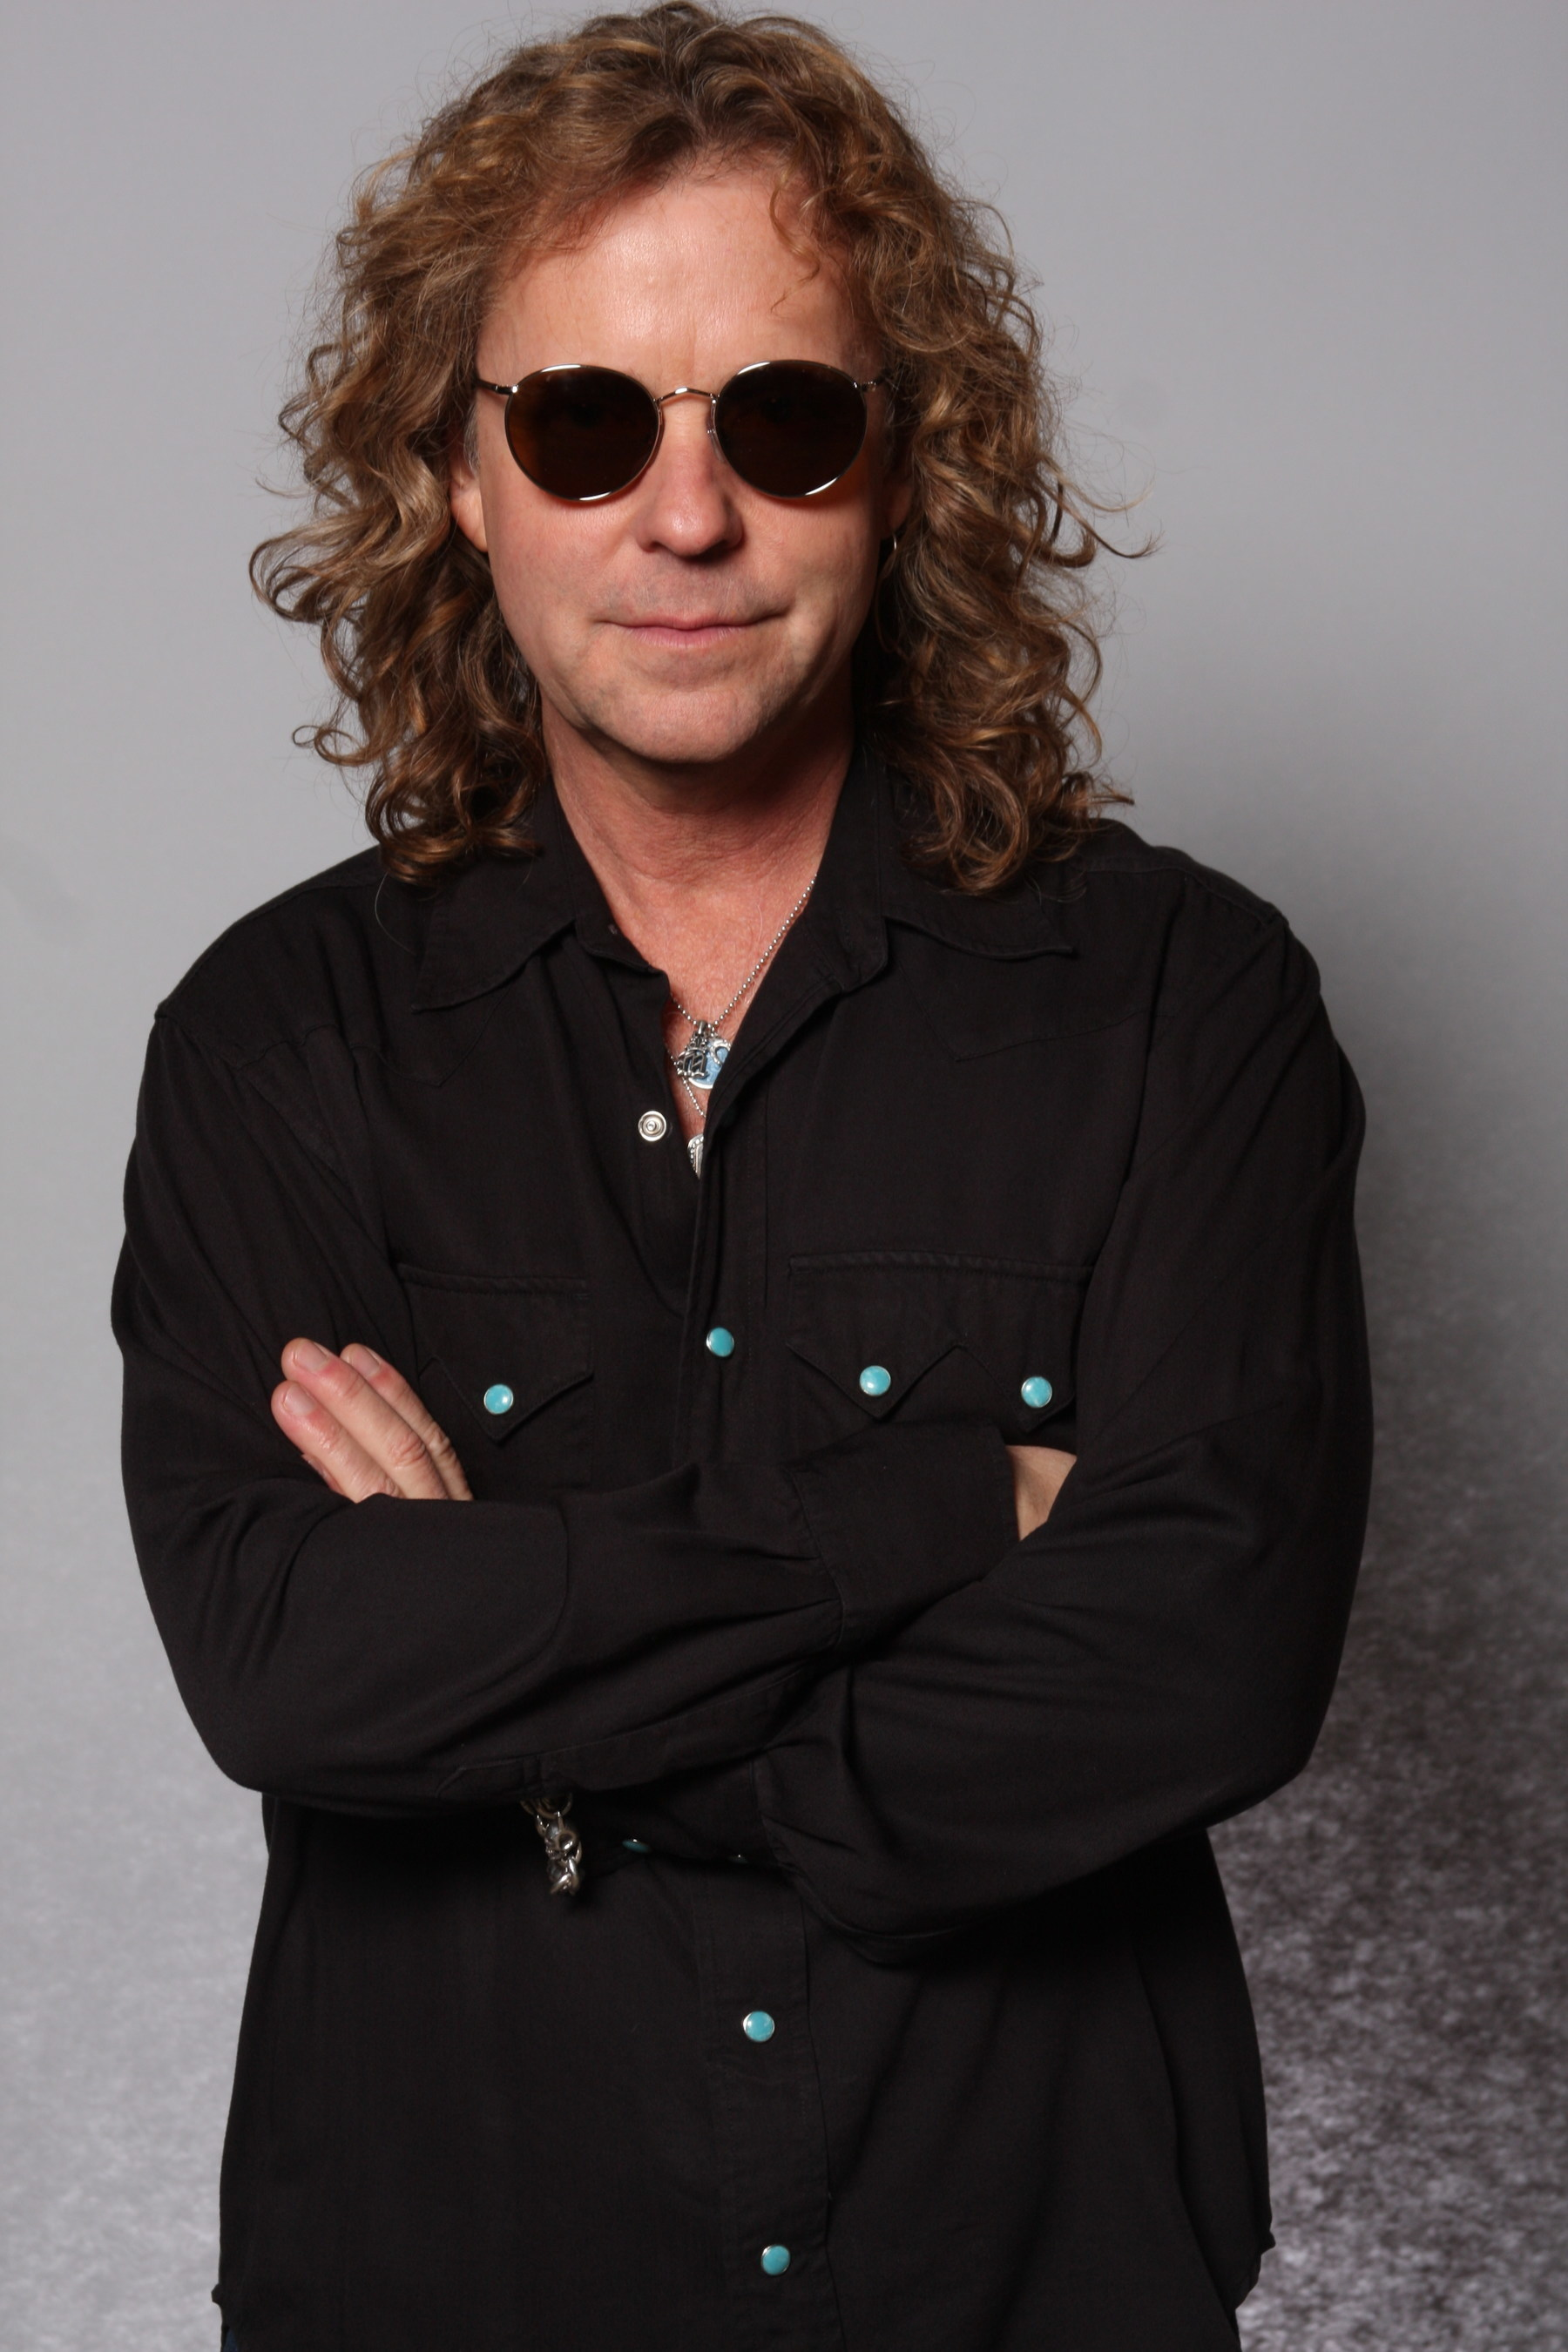 """Jack Blades of Night Ranger has joined Badlands Entertainment. He will be the celebrity host of the """"Pawn For Gold"""" television game show and host a weekly radio show called """"The Monday Night Ranger."""" Badlands Entertainment is scheduled to open the 60,000 square foot Badlands Pawn, Gold & Jewelry on Thanksgiving Day. The location will be host to live concerts, multiple television shows and radio shows."""